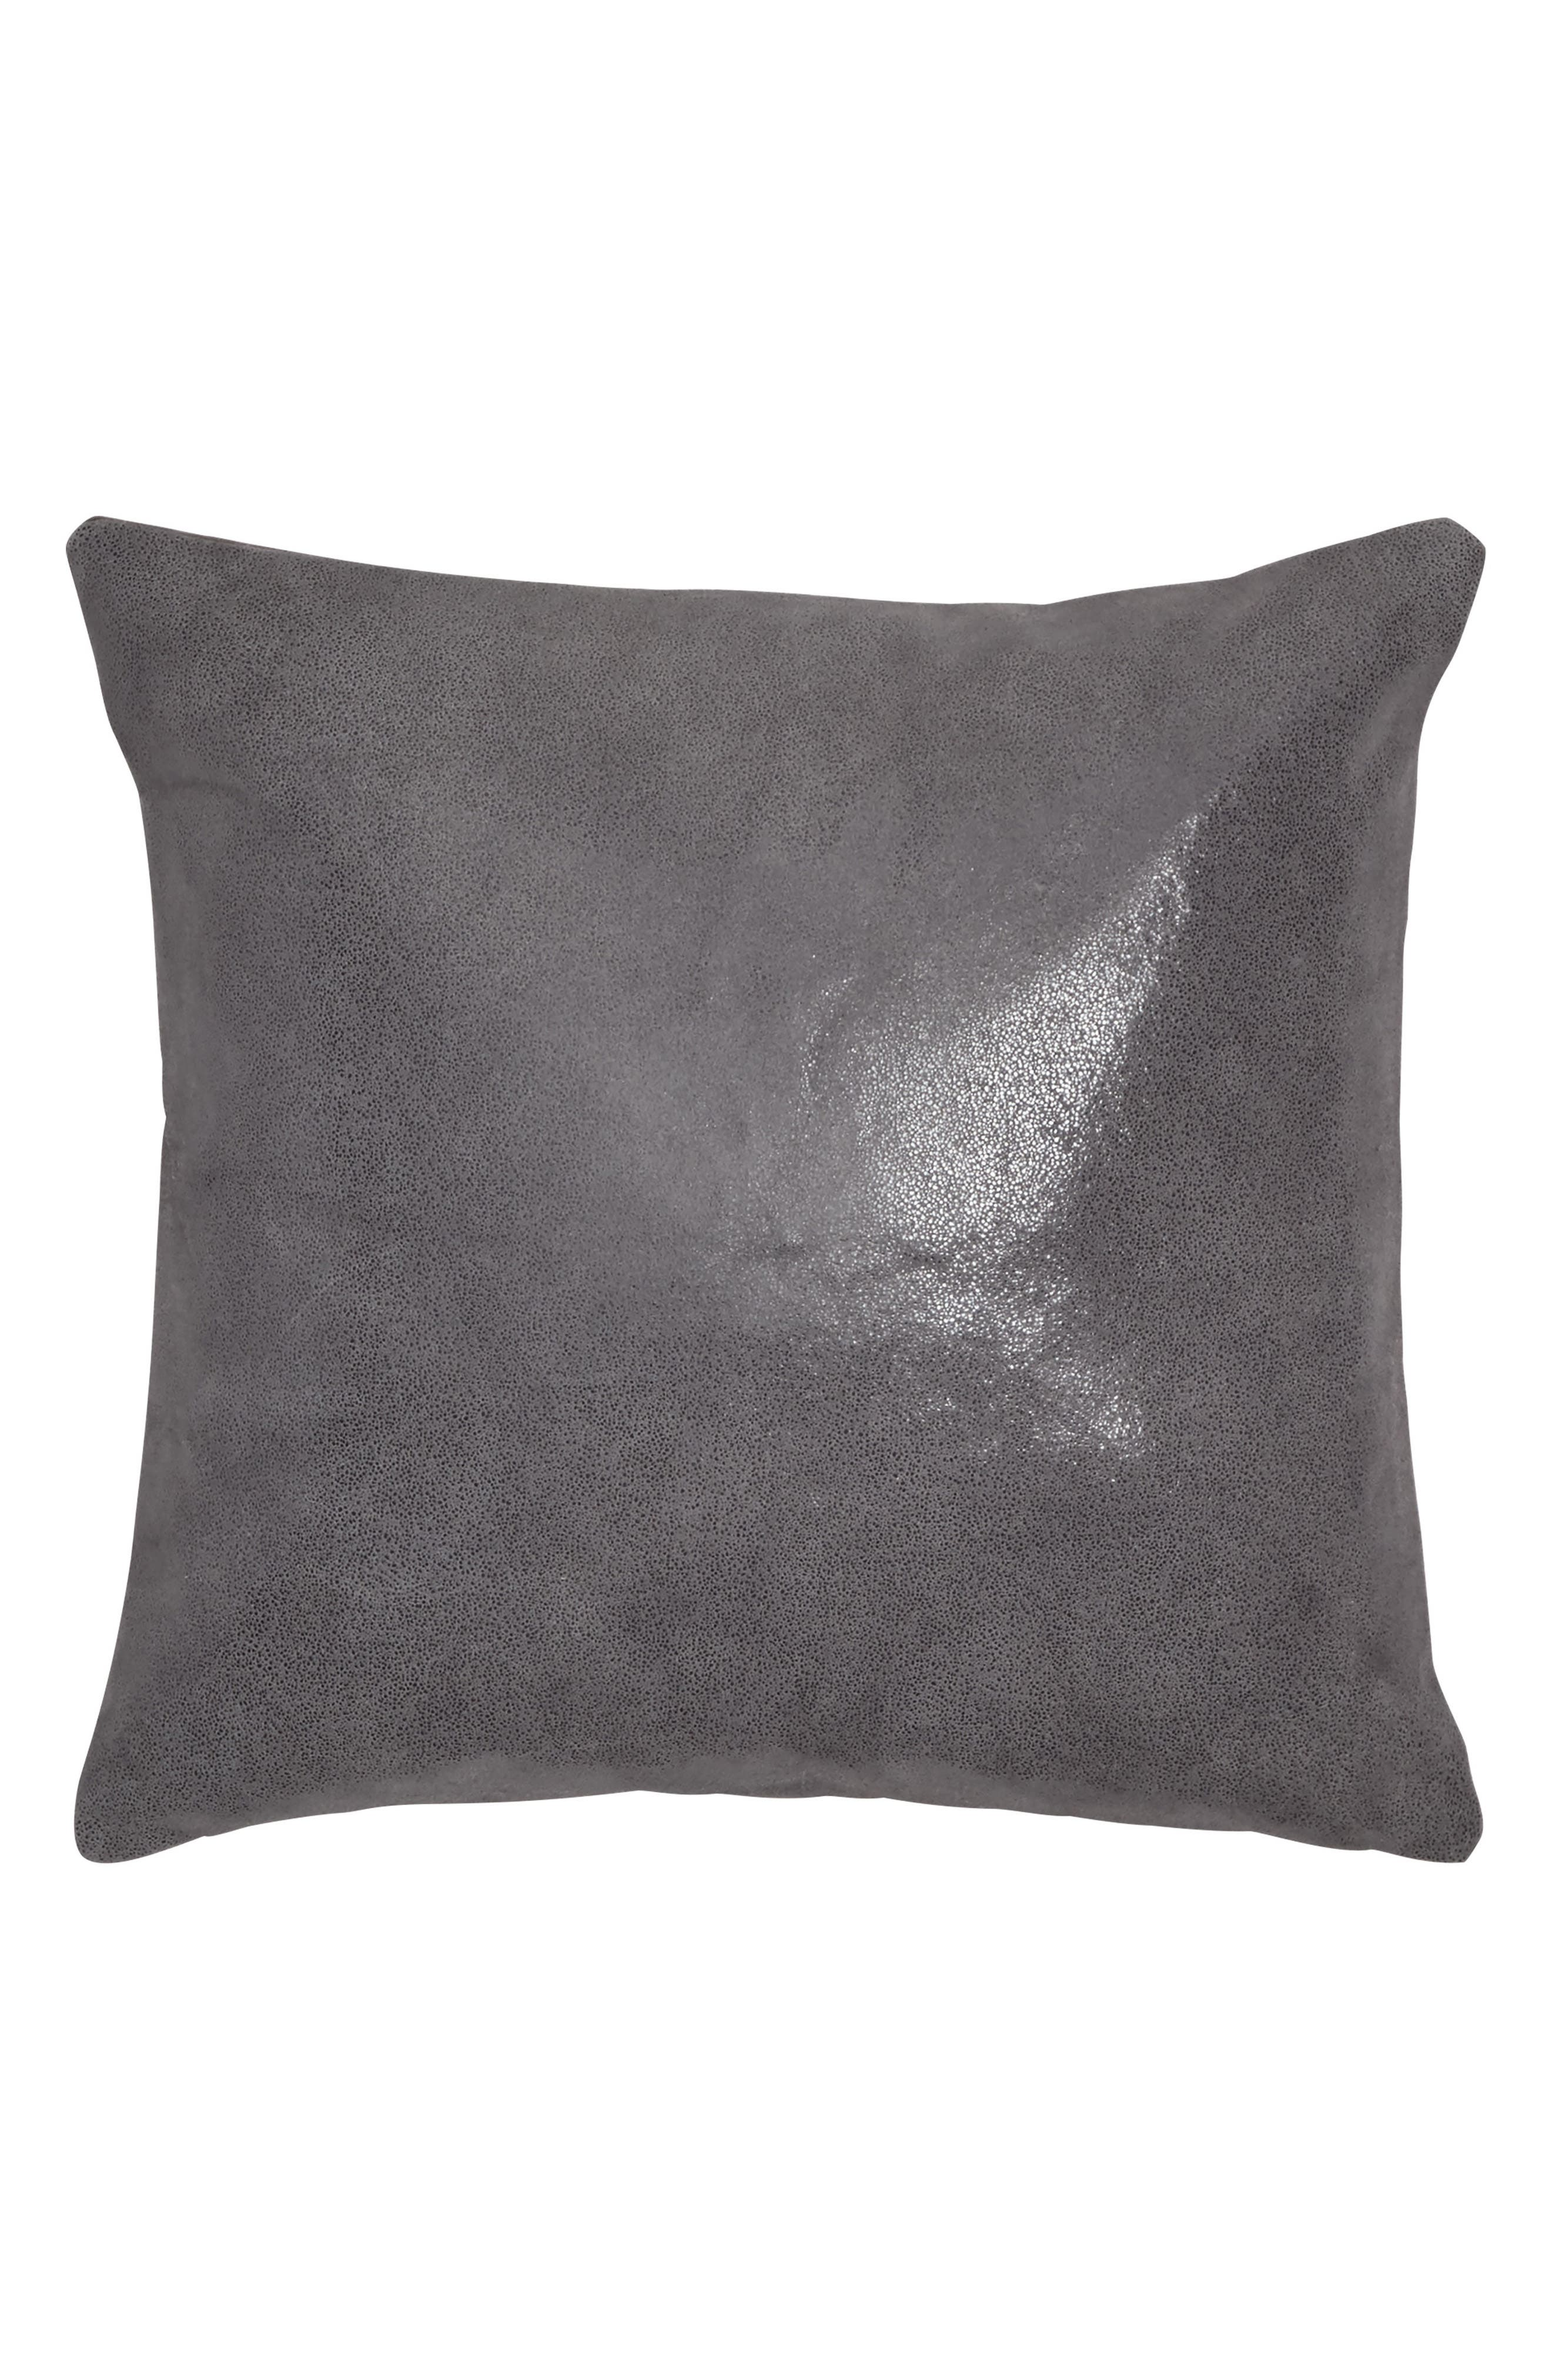 Moonscape Leather Accent Pillow,                             Main thumbnail 1, color,                             020